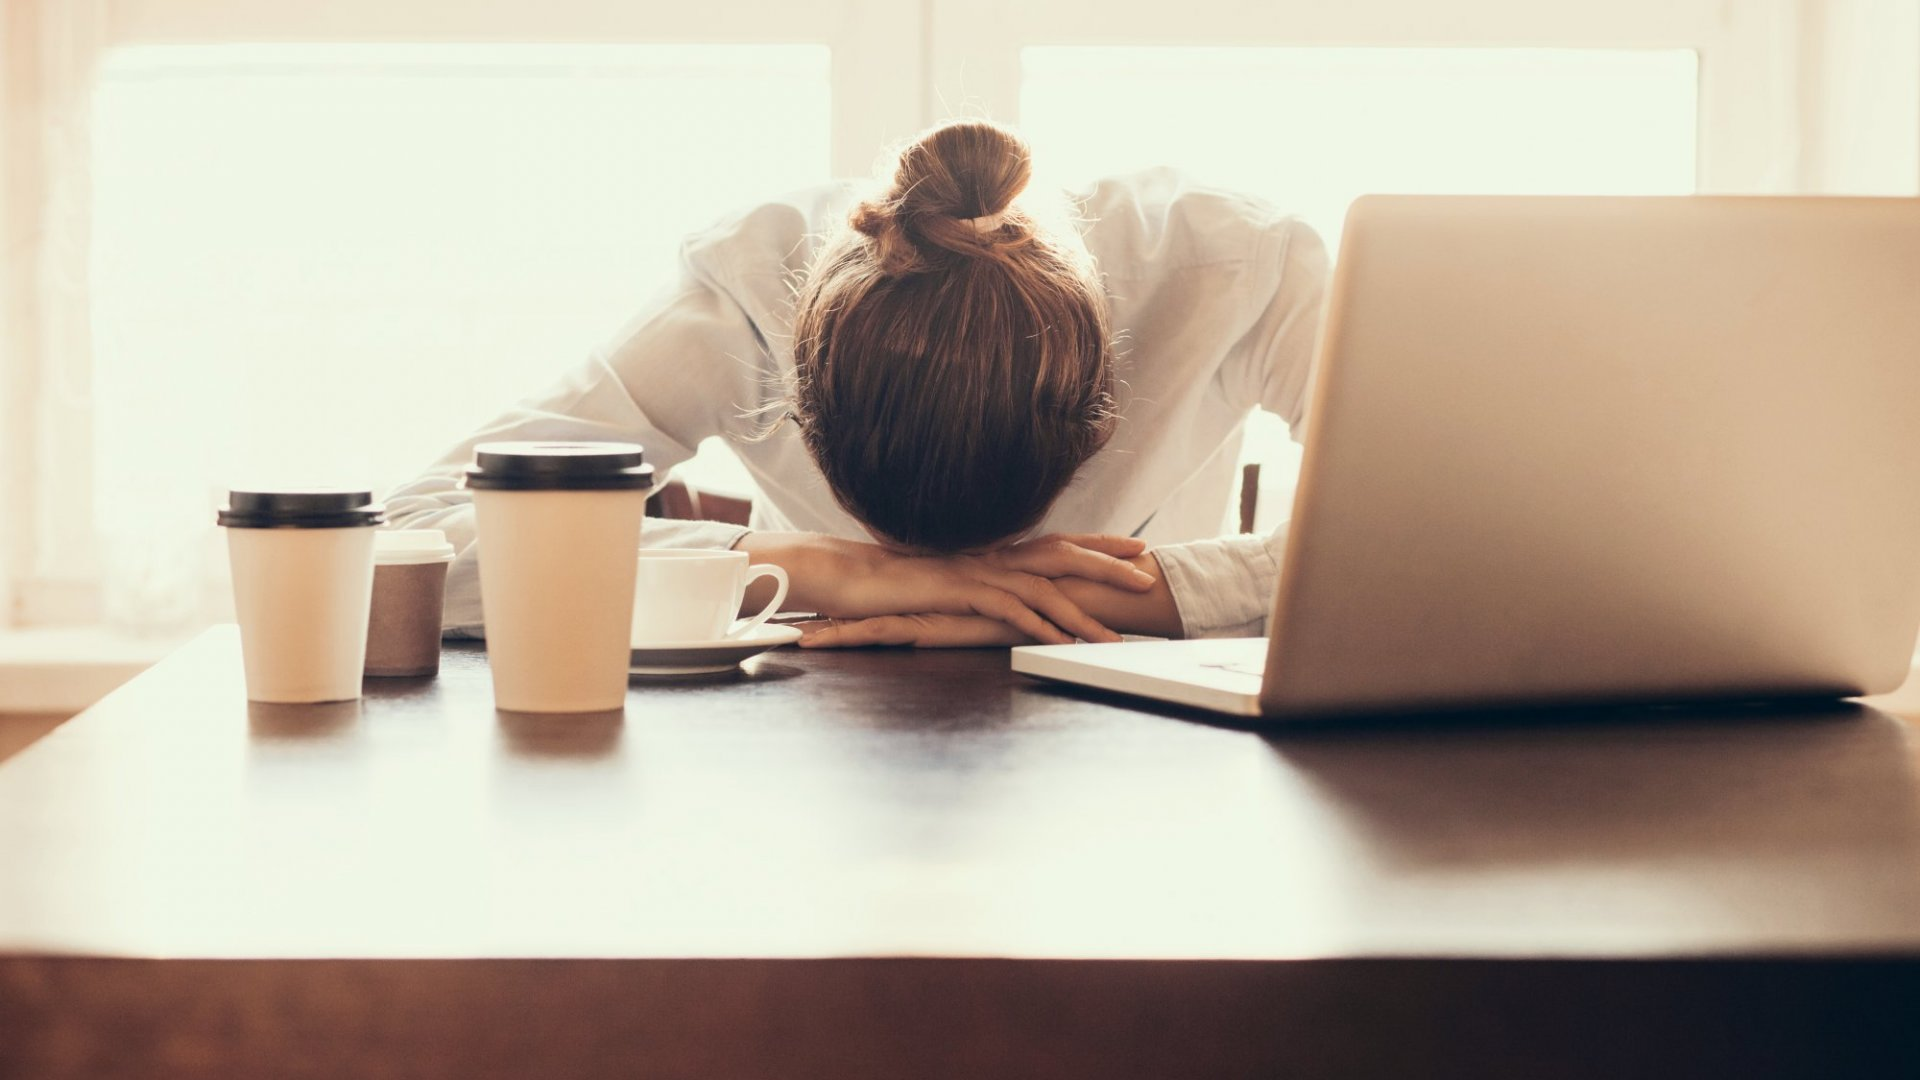 The 5 Stages of Stress (It's Important to Know Which One You're In)